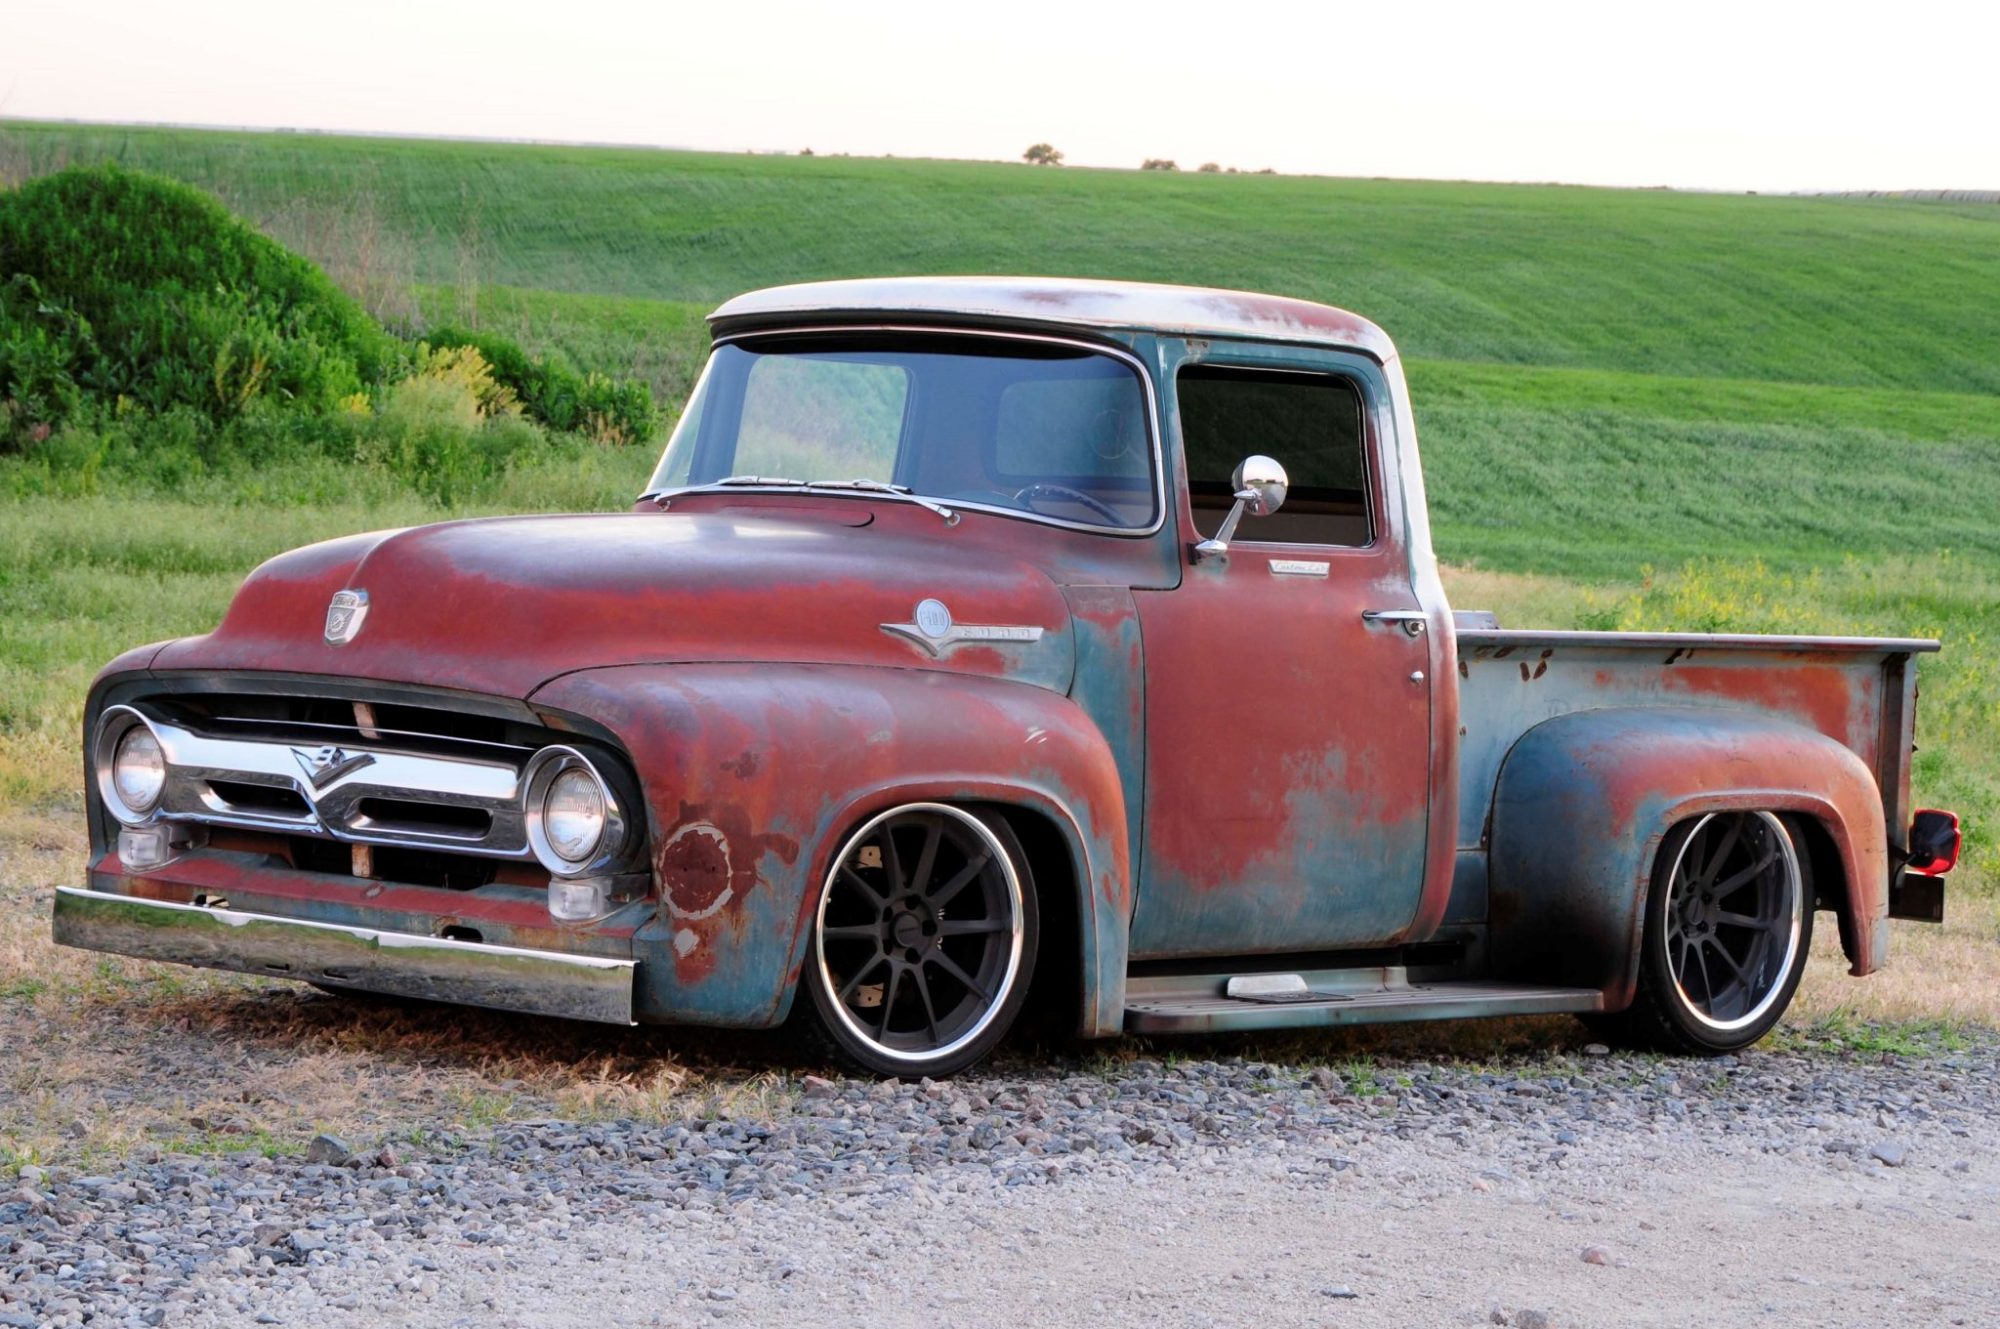 hight resolution of 1956 ford f 100 that looks like a rundown old pickup truck but isn t moto networks